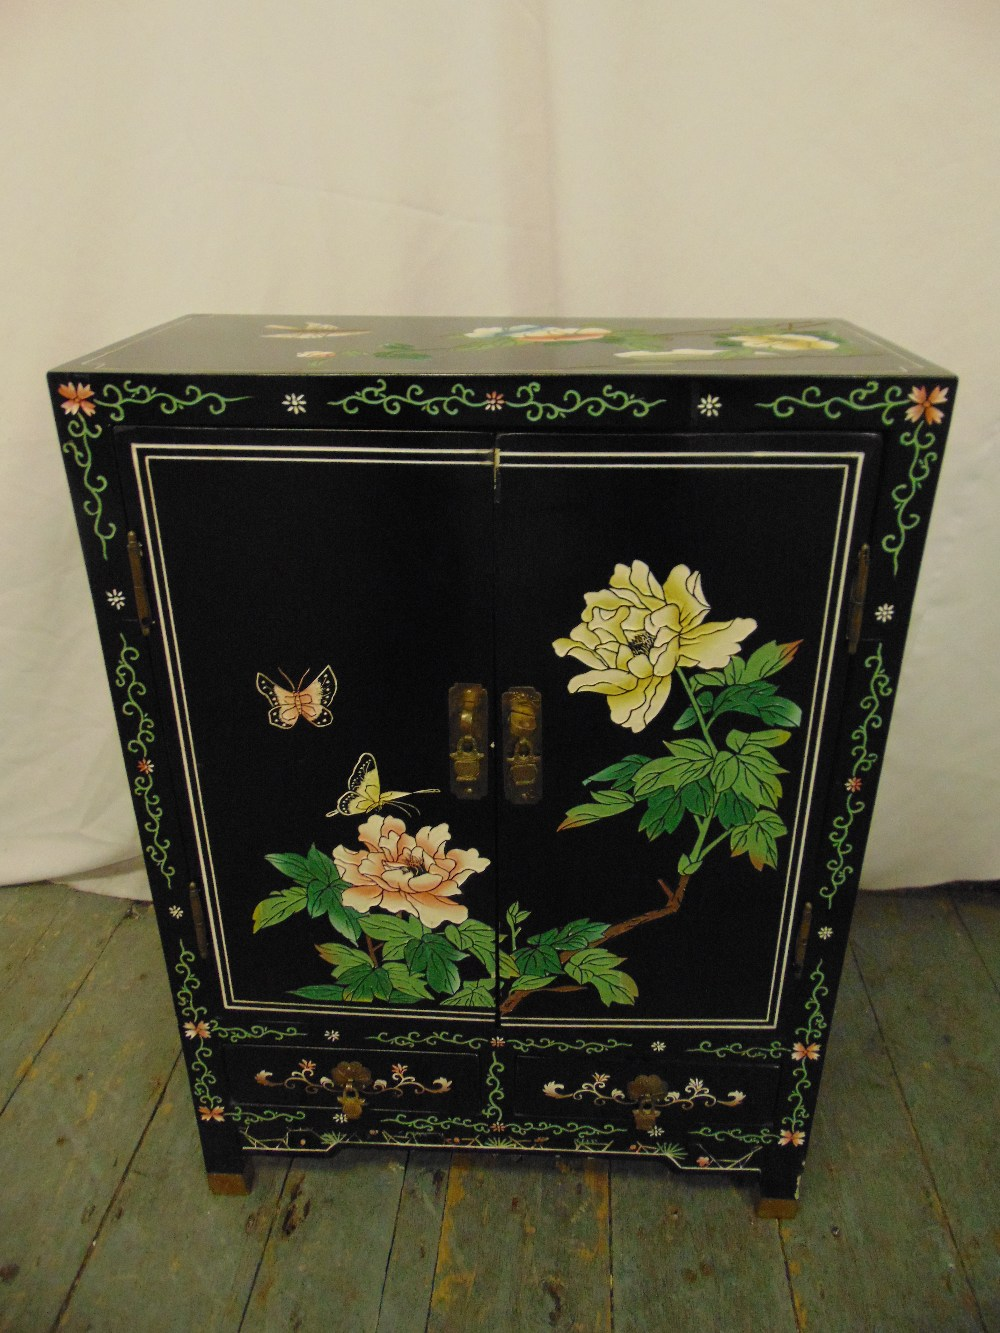 Lot 15 - A Chinese rectangular black ebonised cabinet decorated with butterflies, flowers and leaves